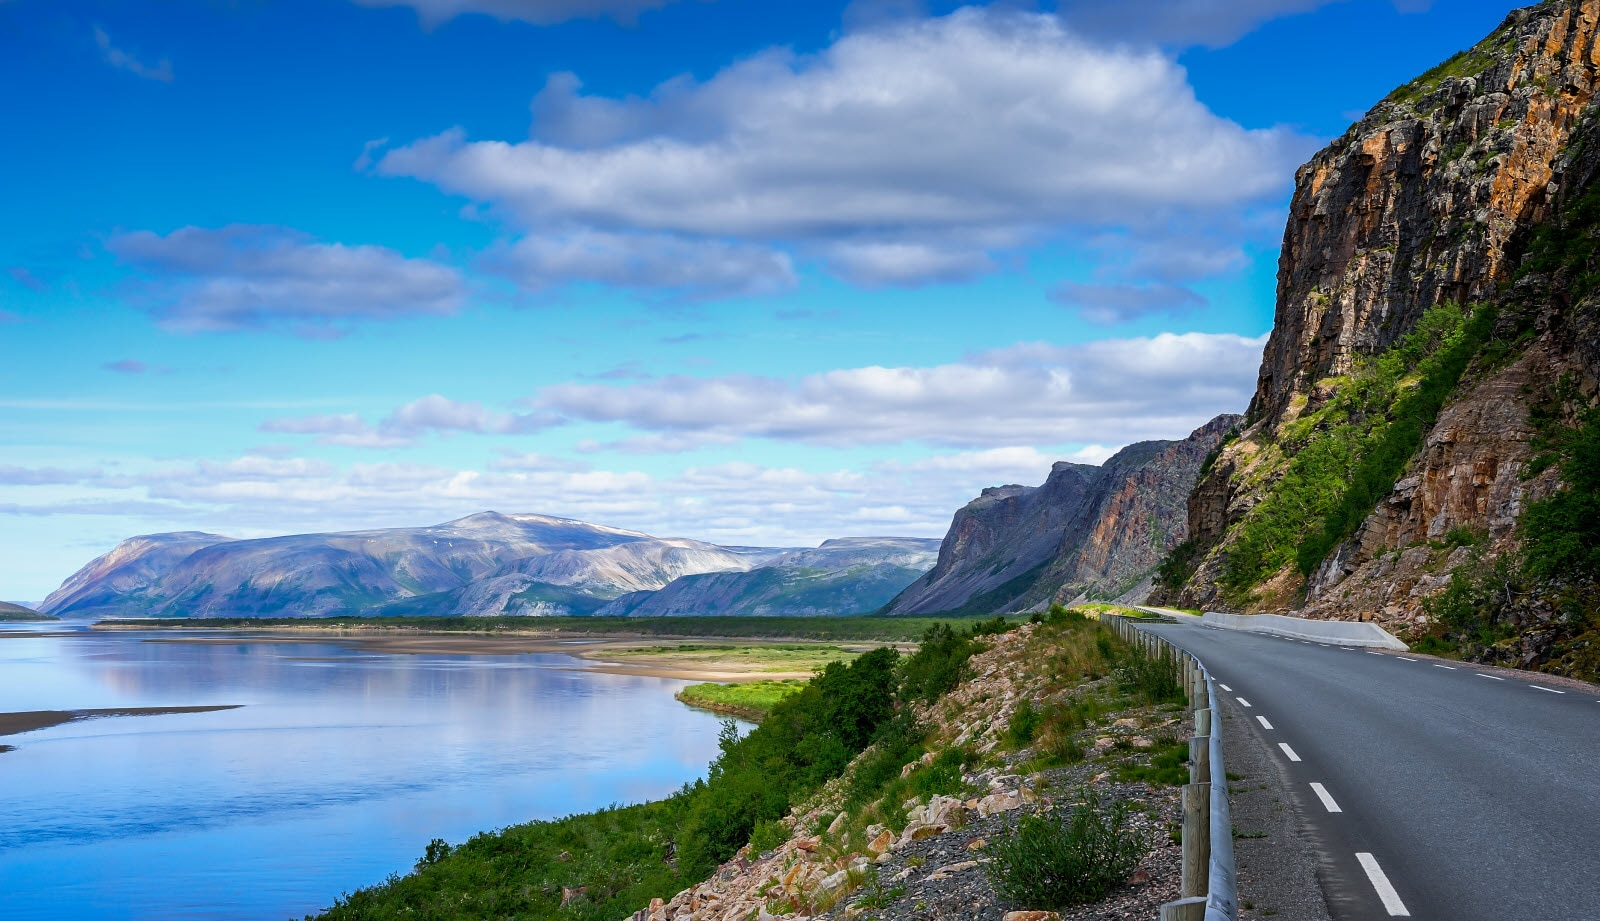 stock-photo-tana-river-finnmark-norway-124615899_b.jpg